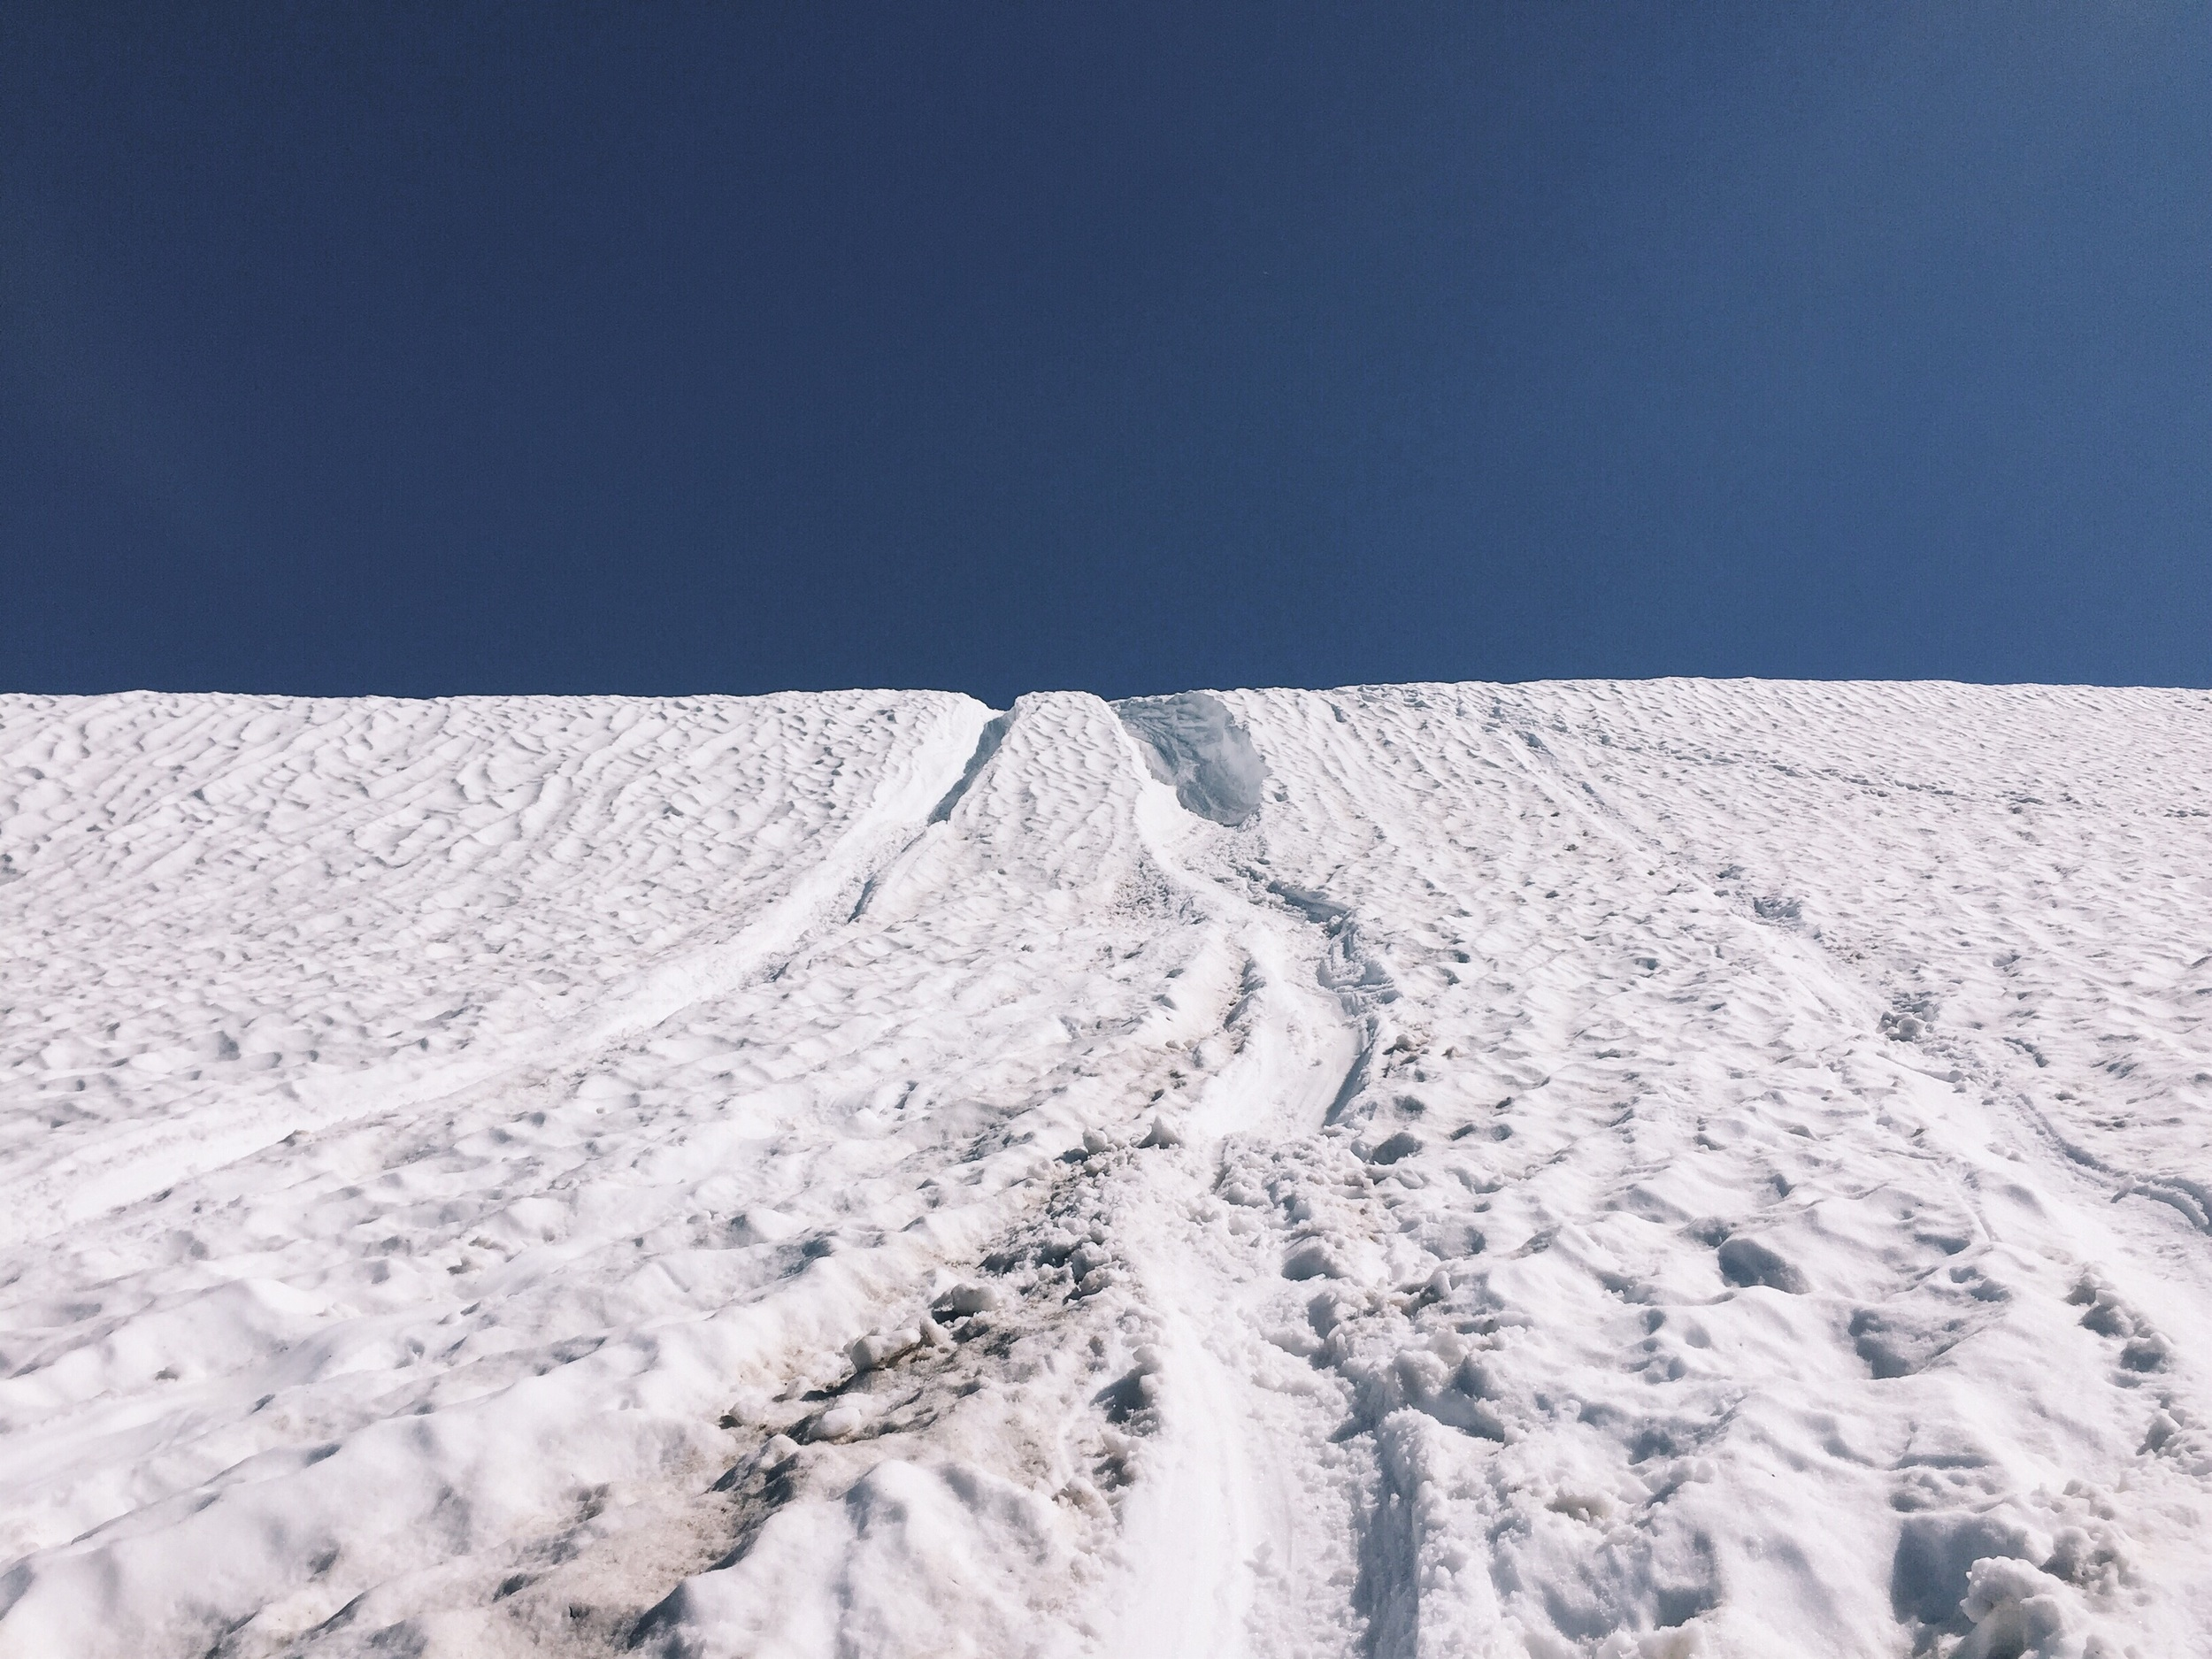 Went down this glissade. It was a little steep!